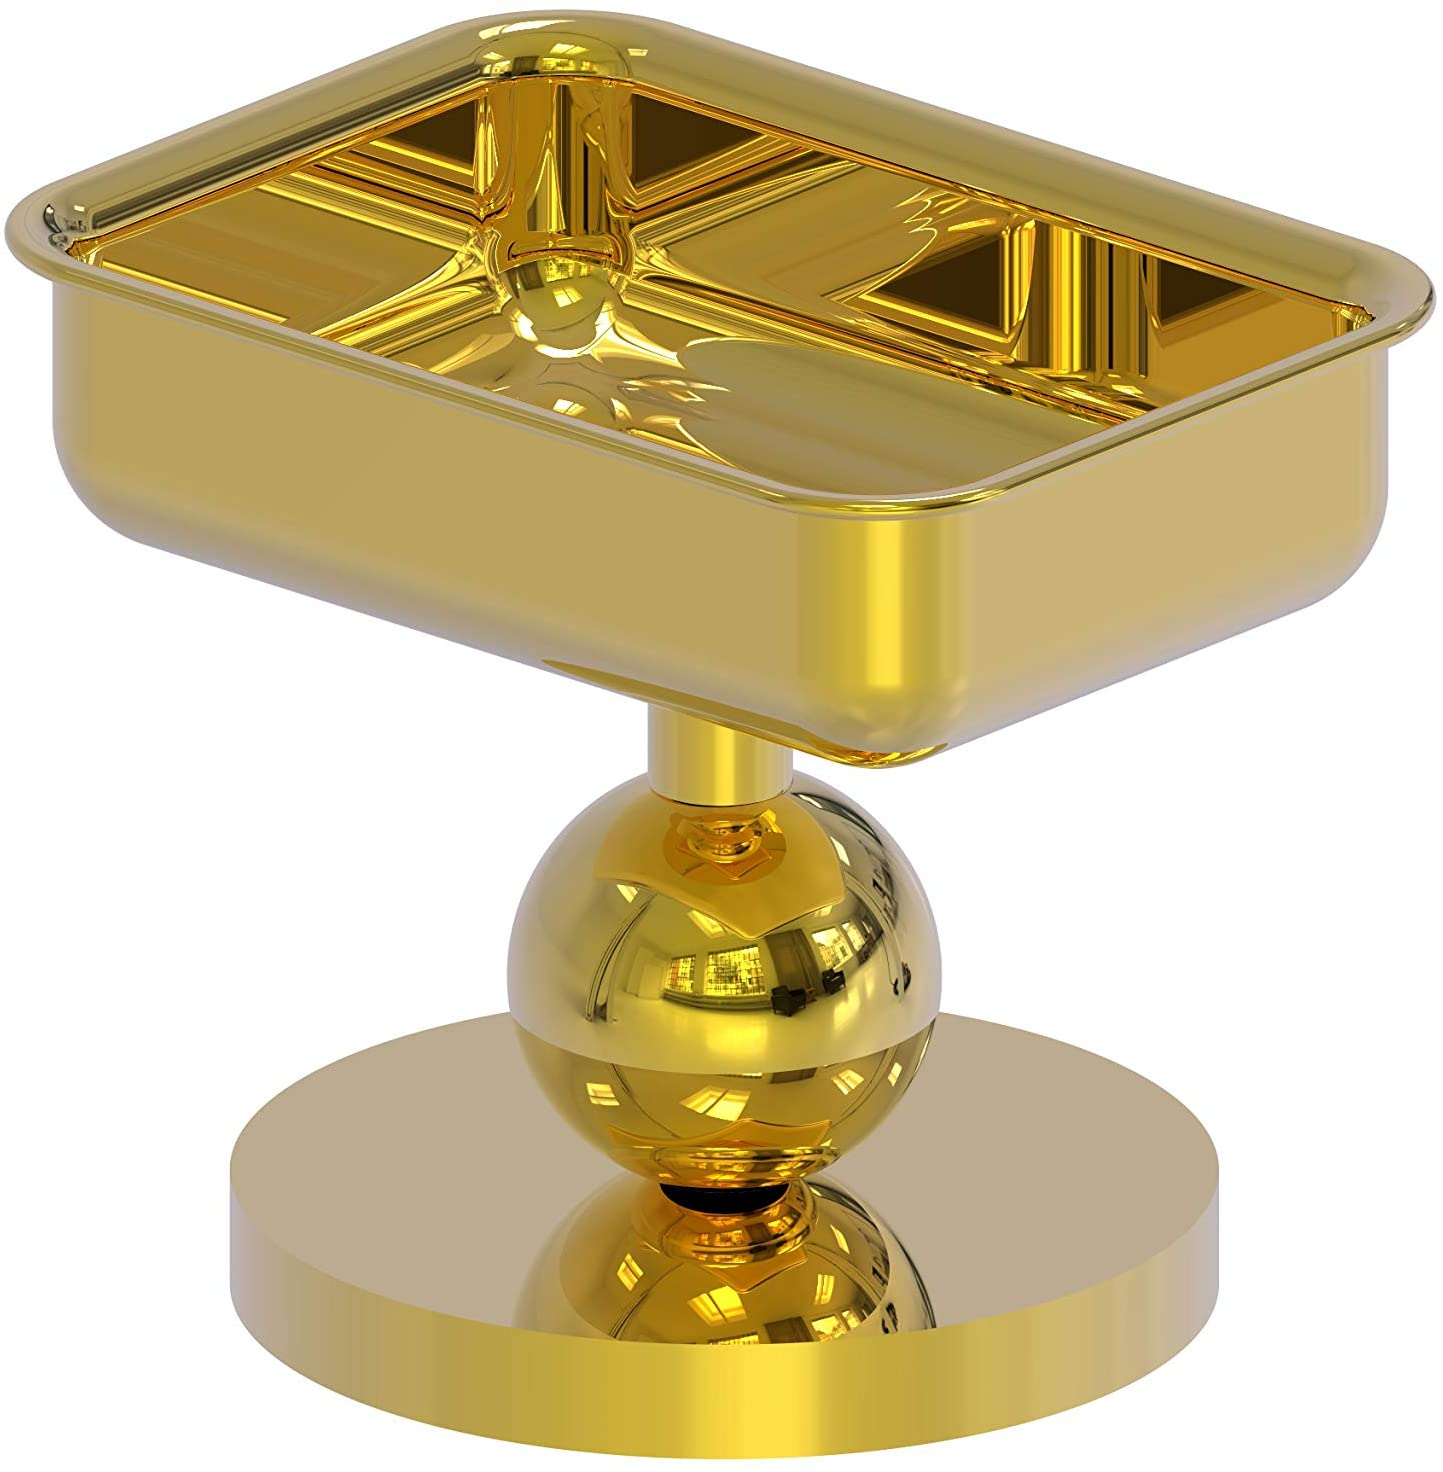 Allied Brass GL-56 Vanity Top Soap Dish, Polished Brass